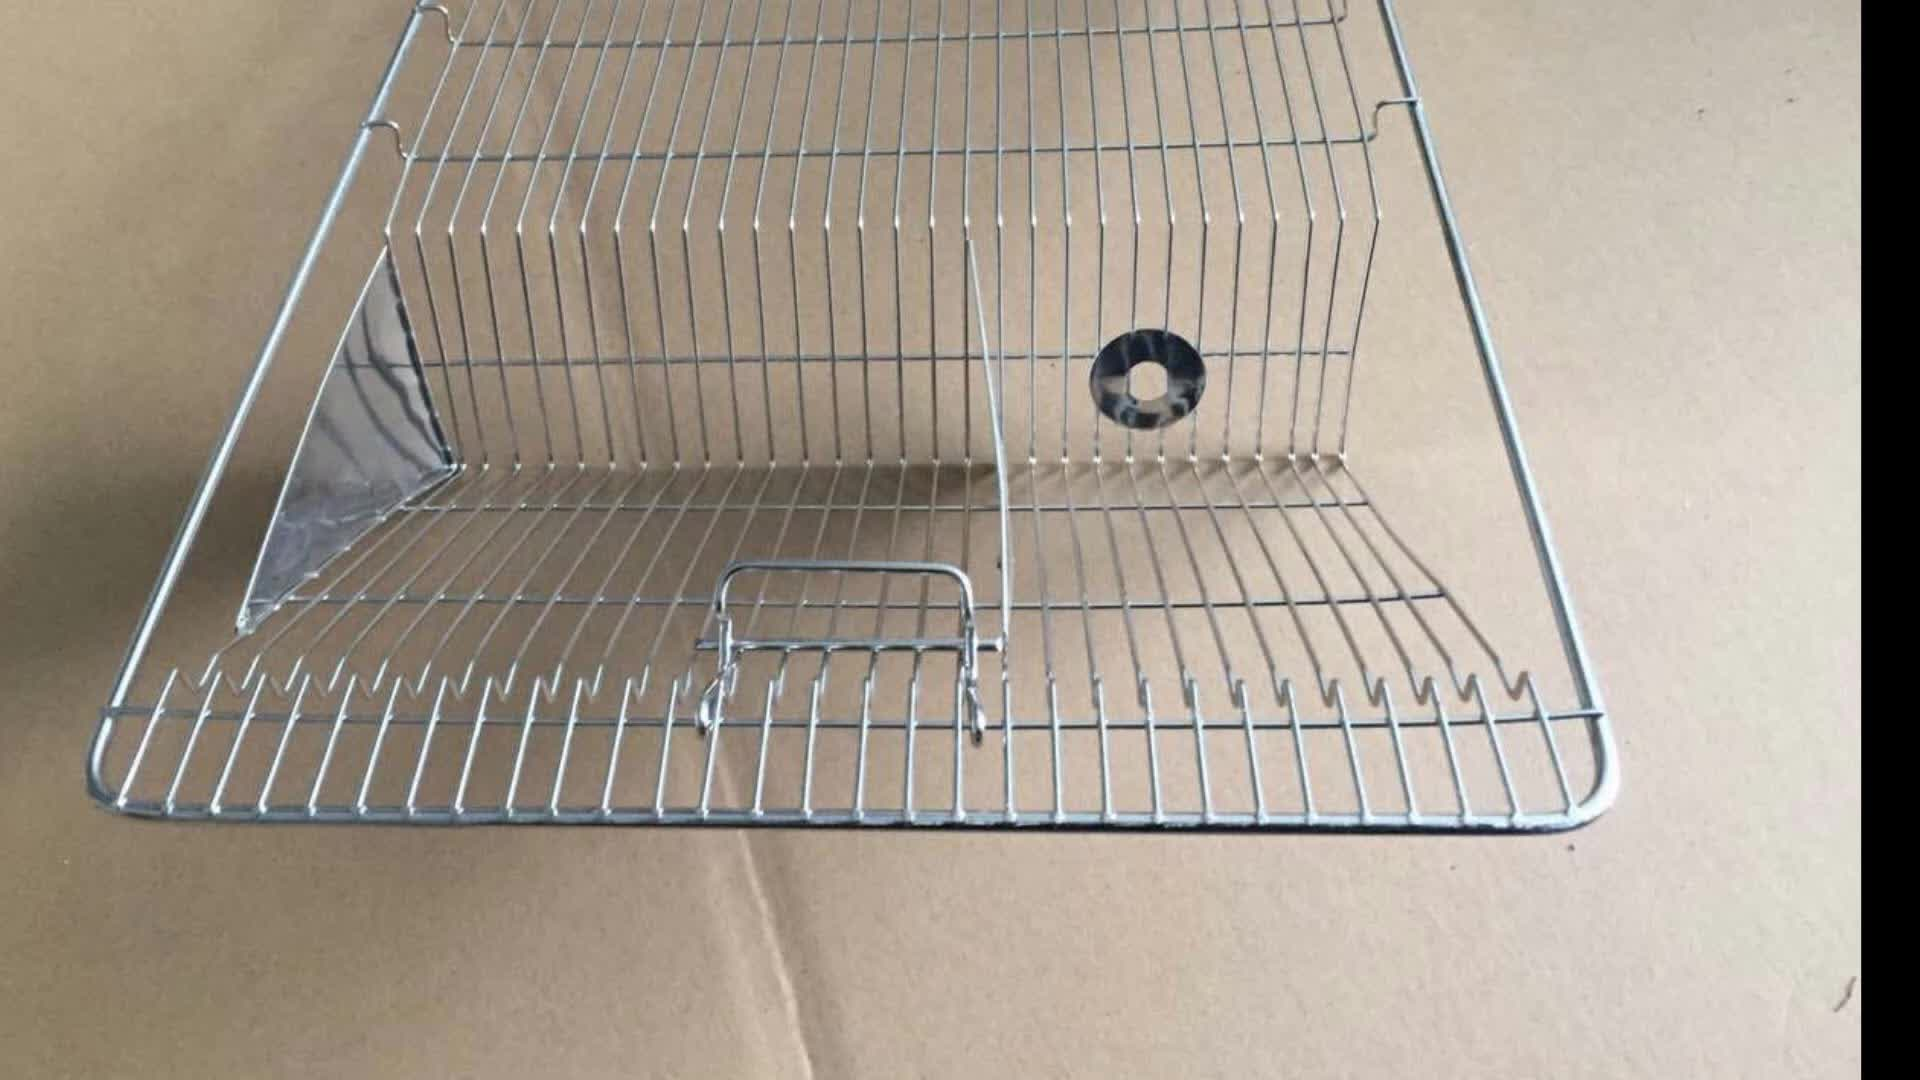 Laboratory Equipment Polypropylene Rodent Breeding Racks/reptile Cage  Supplier - Buy Rodent Breeding Racks Supplier,Reptile Cage  Supplier,Laboratory